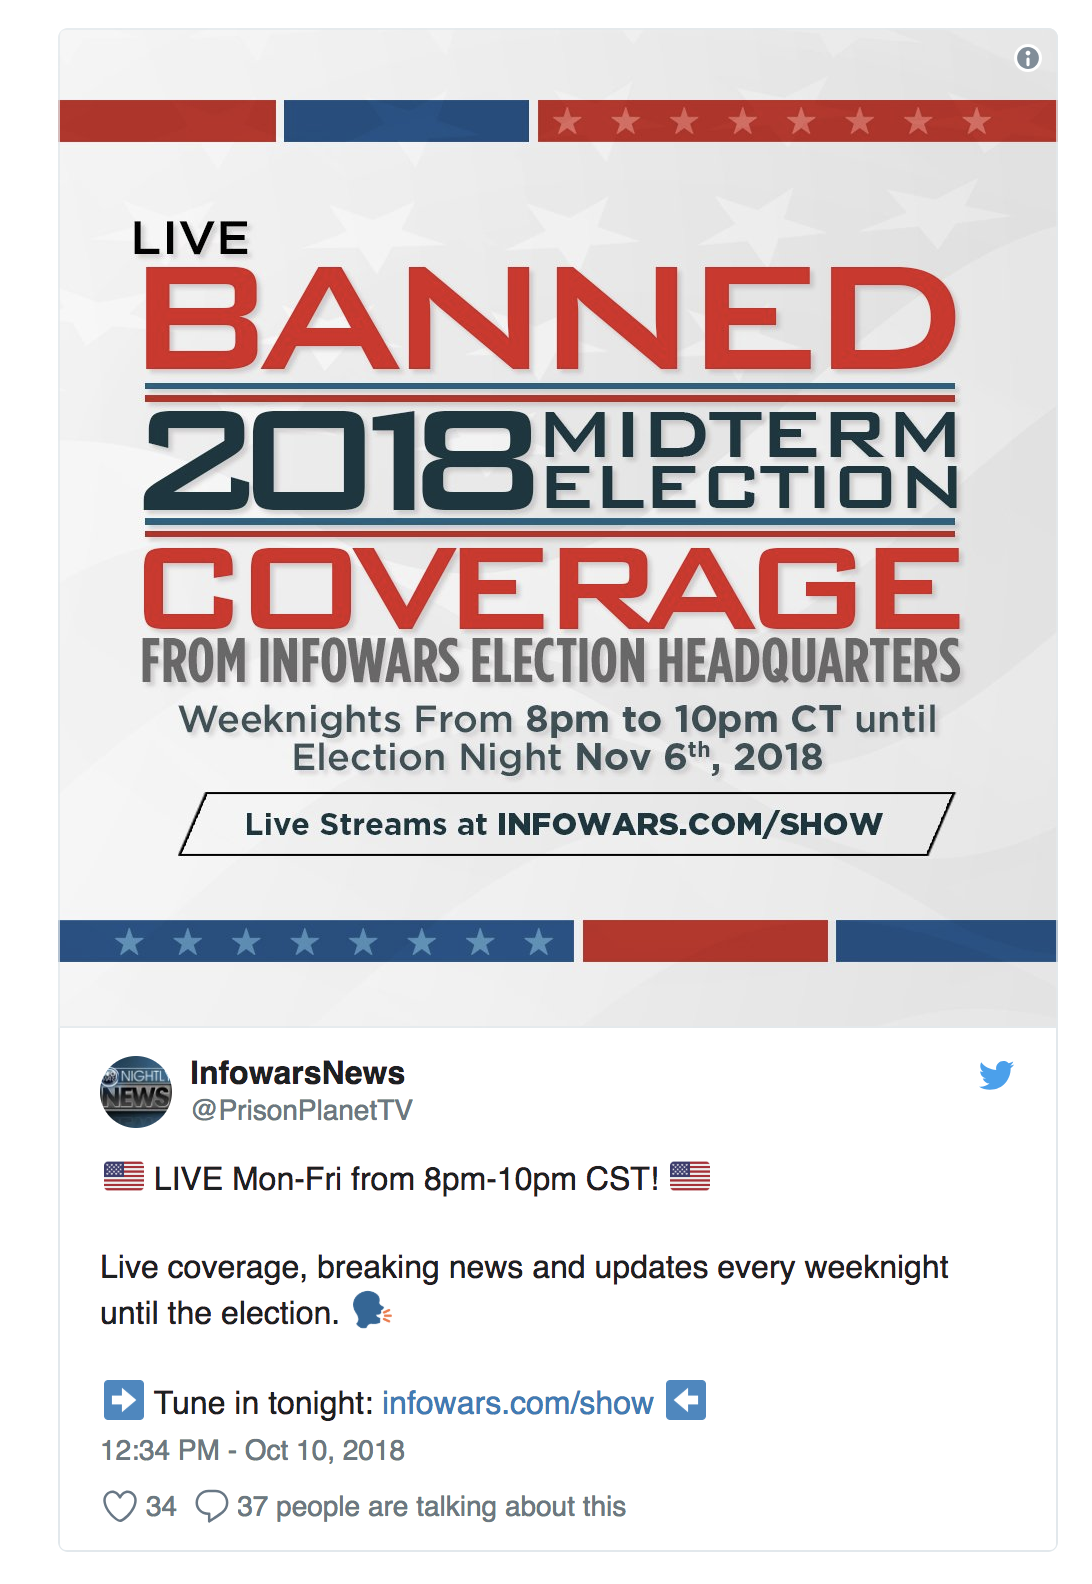 Twitter Bans Infowars Account for No Reason